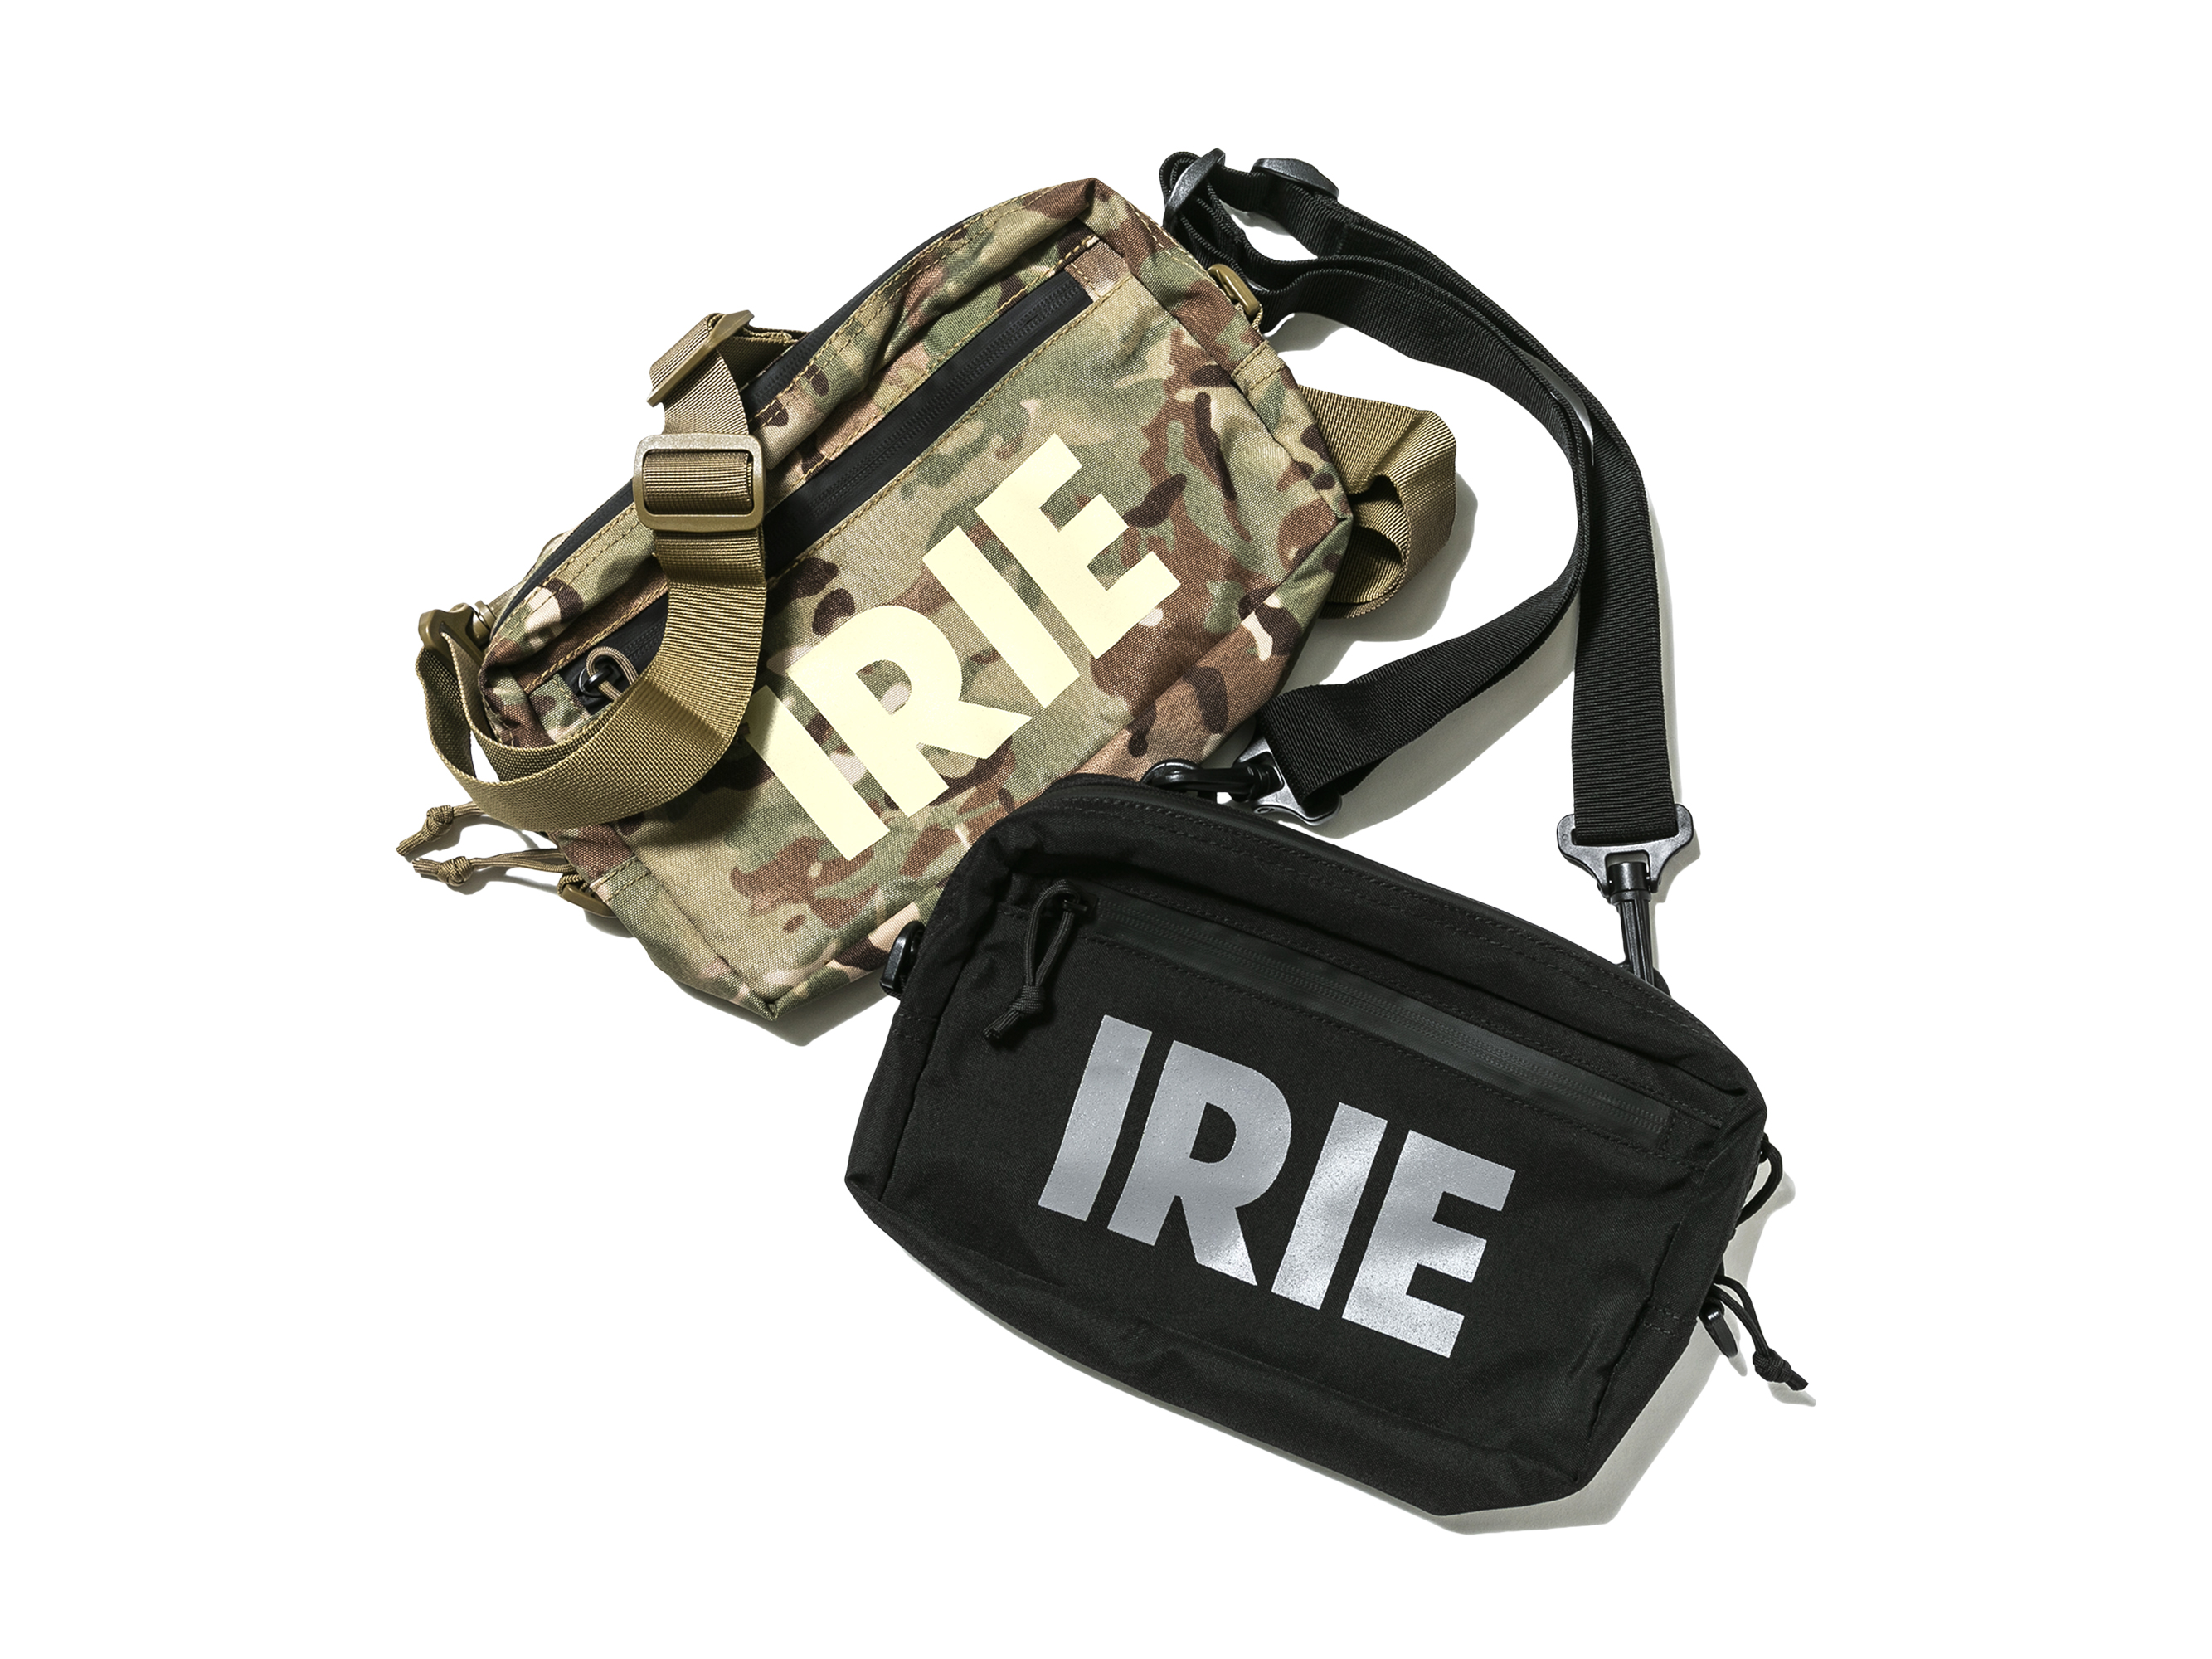 【20% OFF】IRIE MILITARY SHOULDER BAG - IRIE by irielife